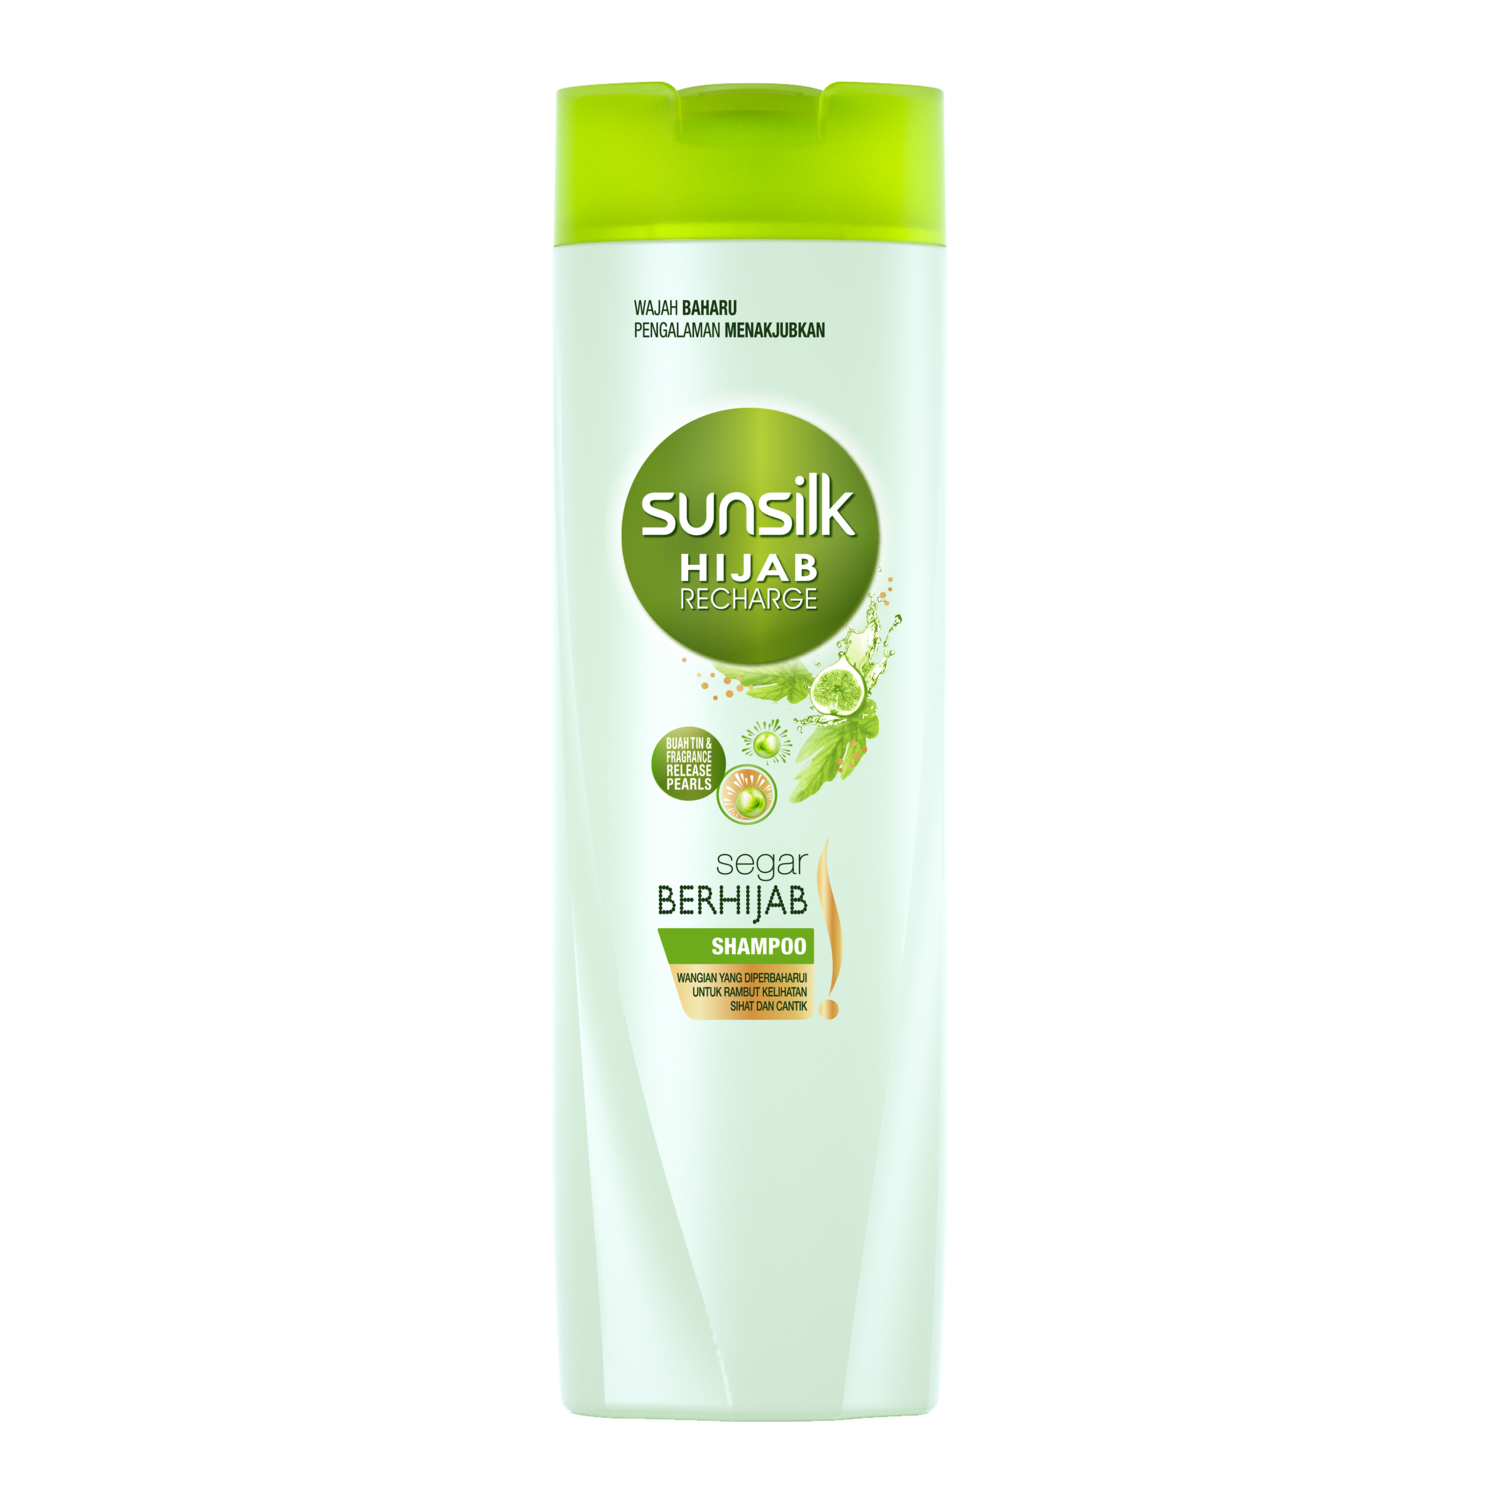 Is sunsilk a mild shampoo